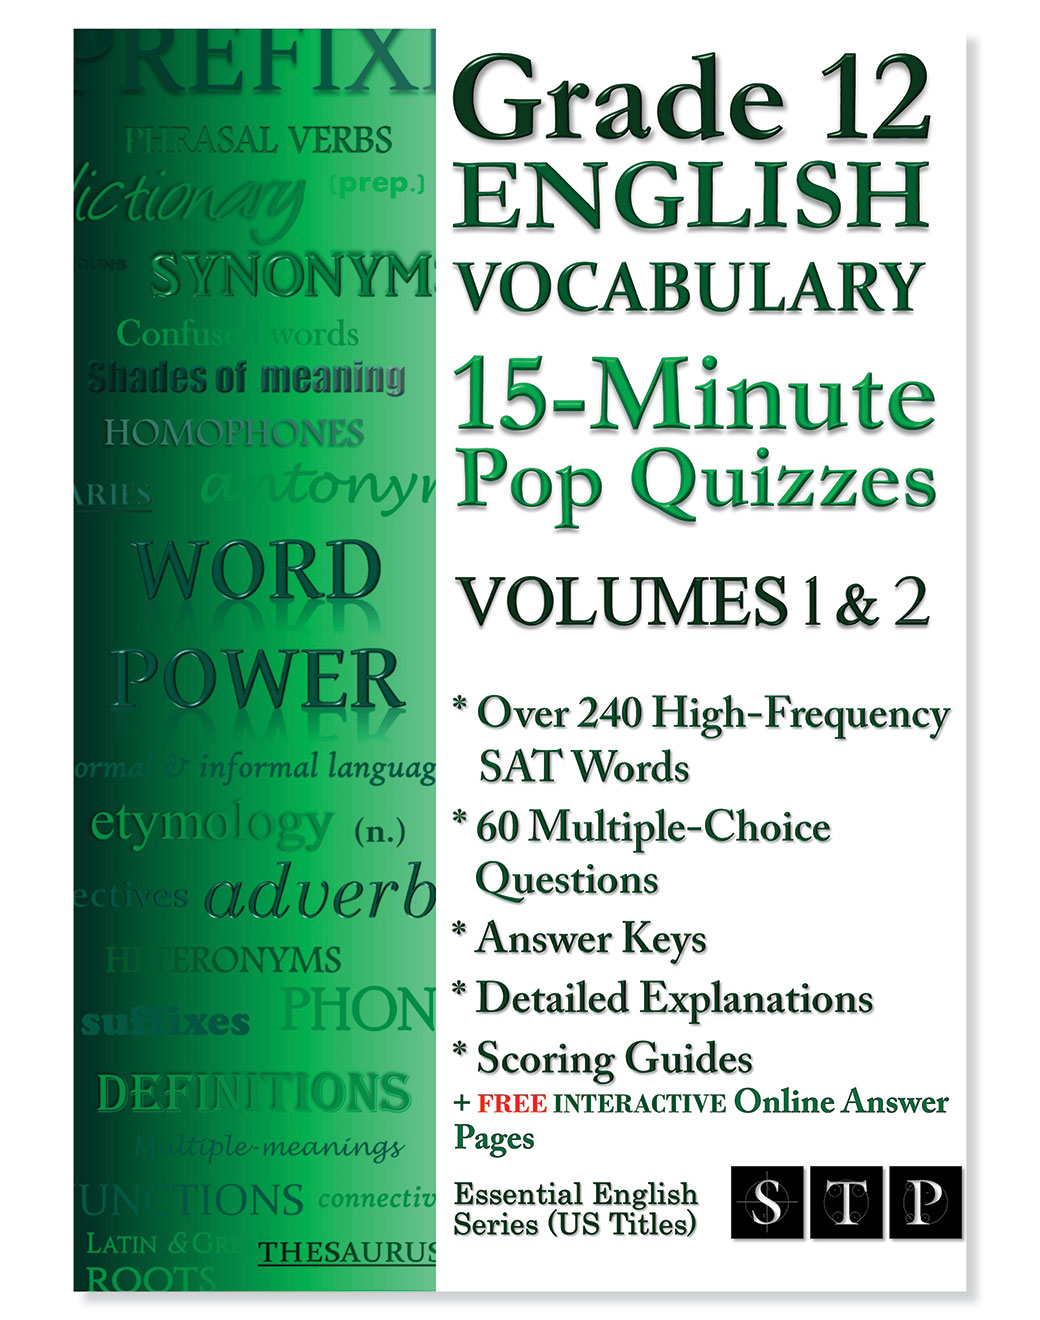 STP Books Grade 12 English Vocabulary 15-Minute Pop Quizzes Volumes 1 & 2